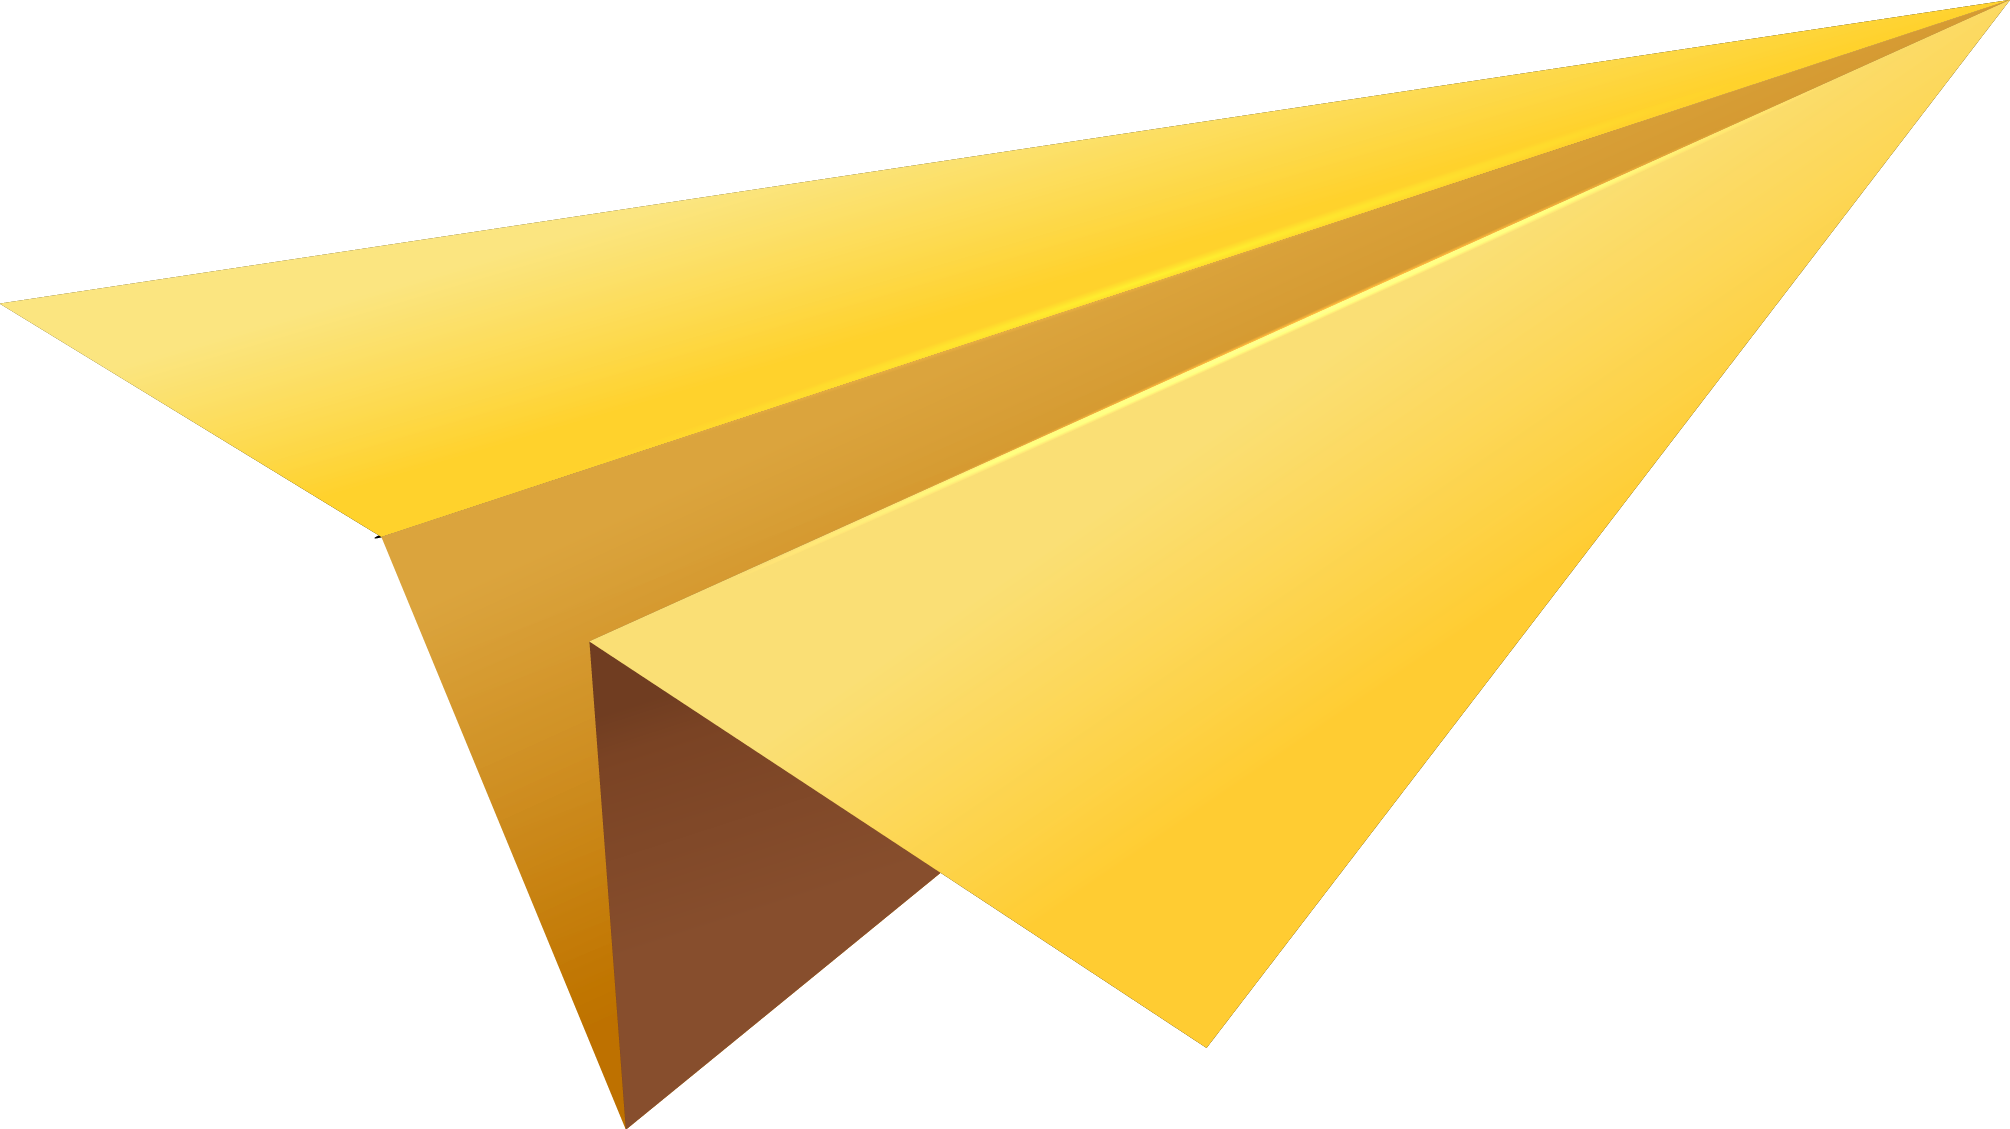 Download Yellow Paper Plane PNG Image for Free.